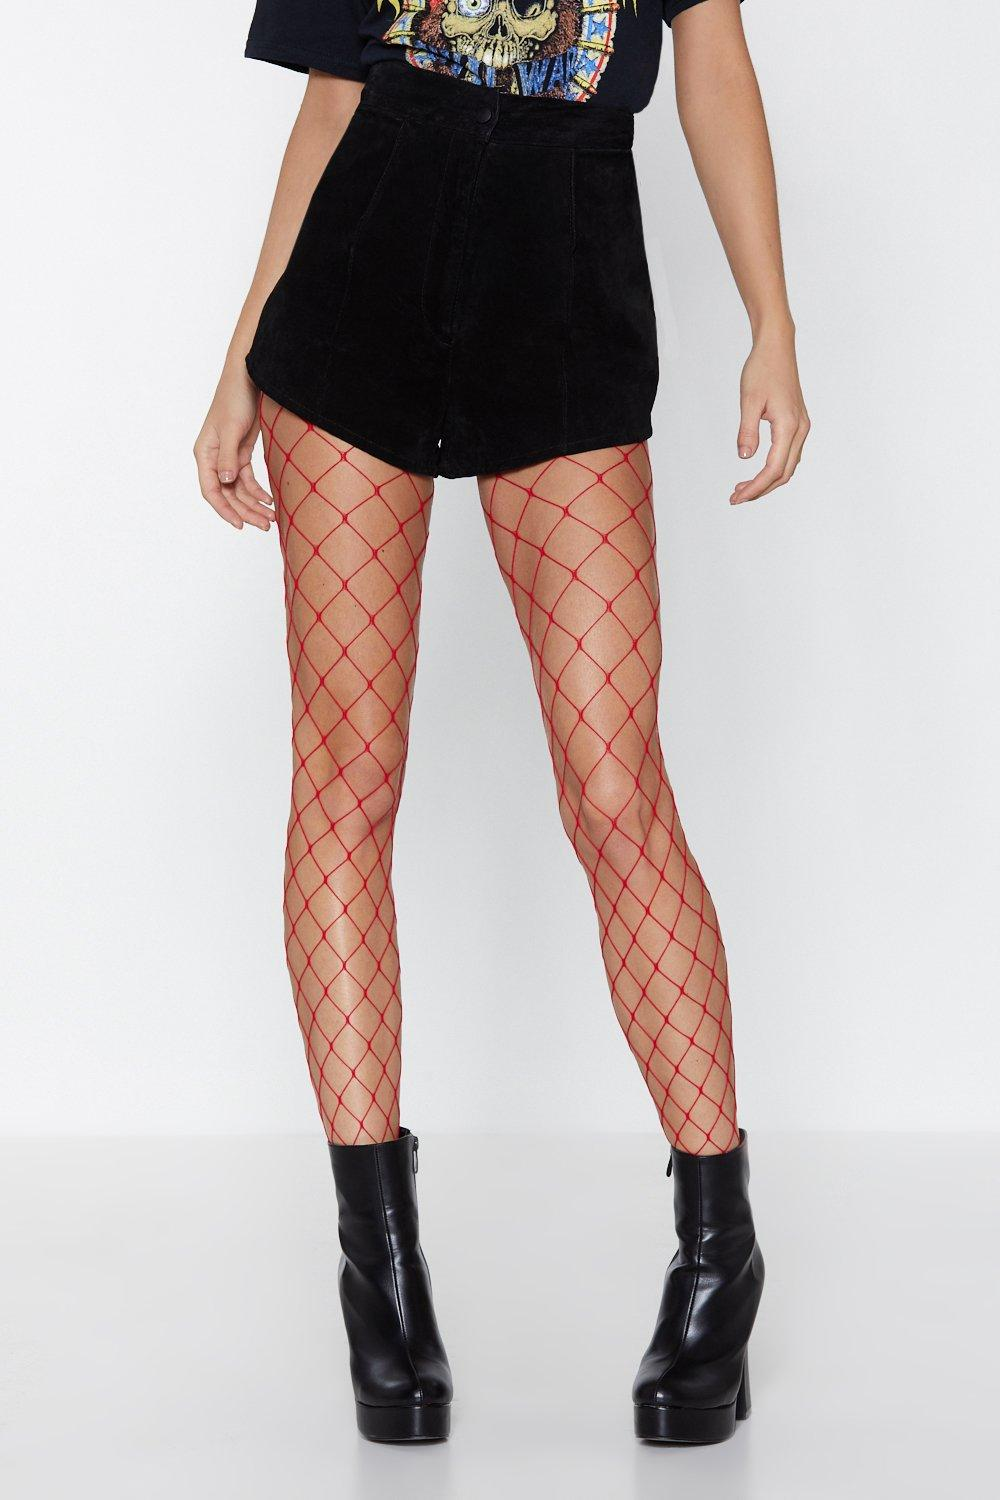 6b9366050dc4c Net For You Fishnet Tights | Shop Clothes at Nasty Gal!